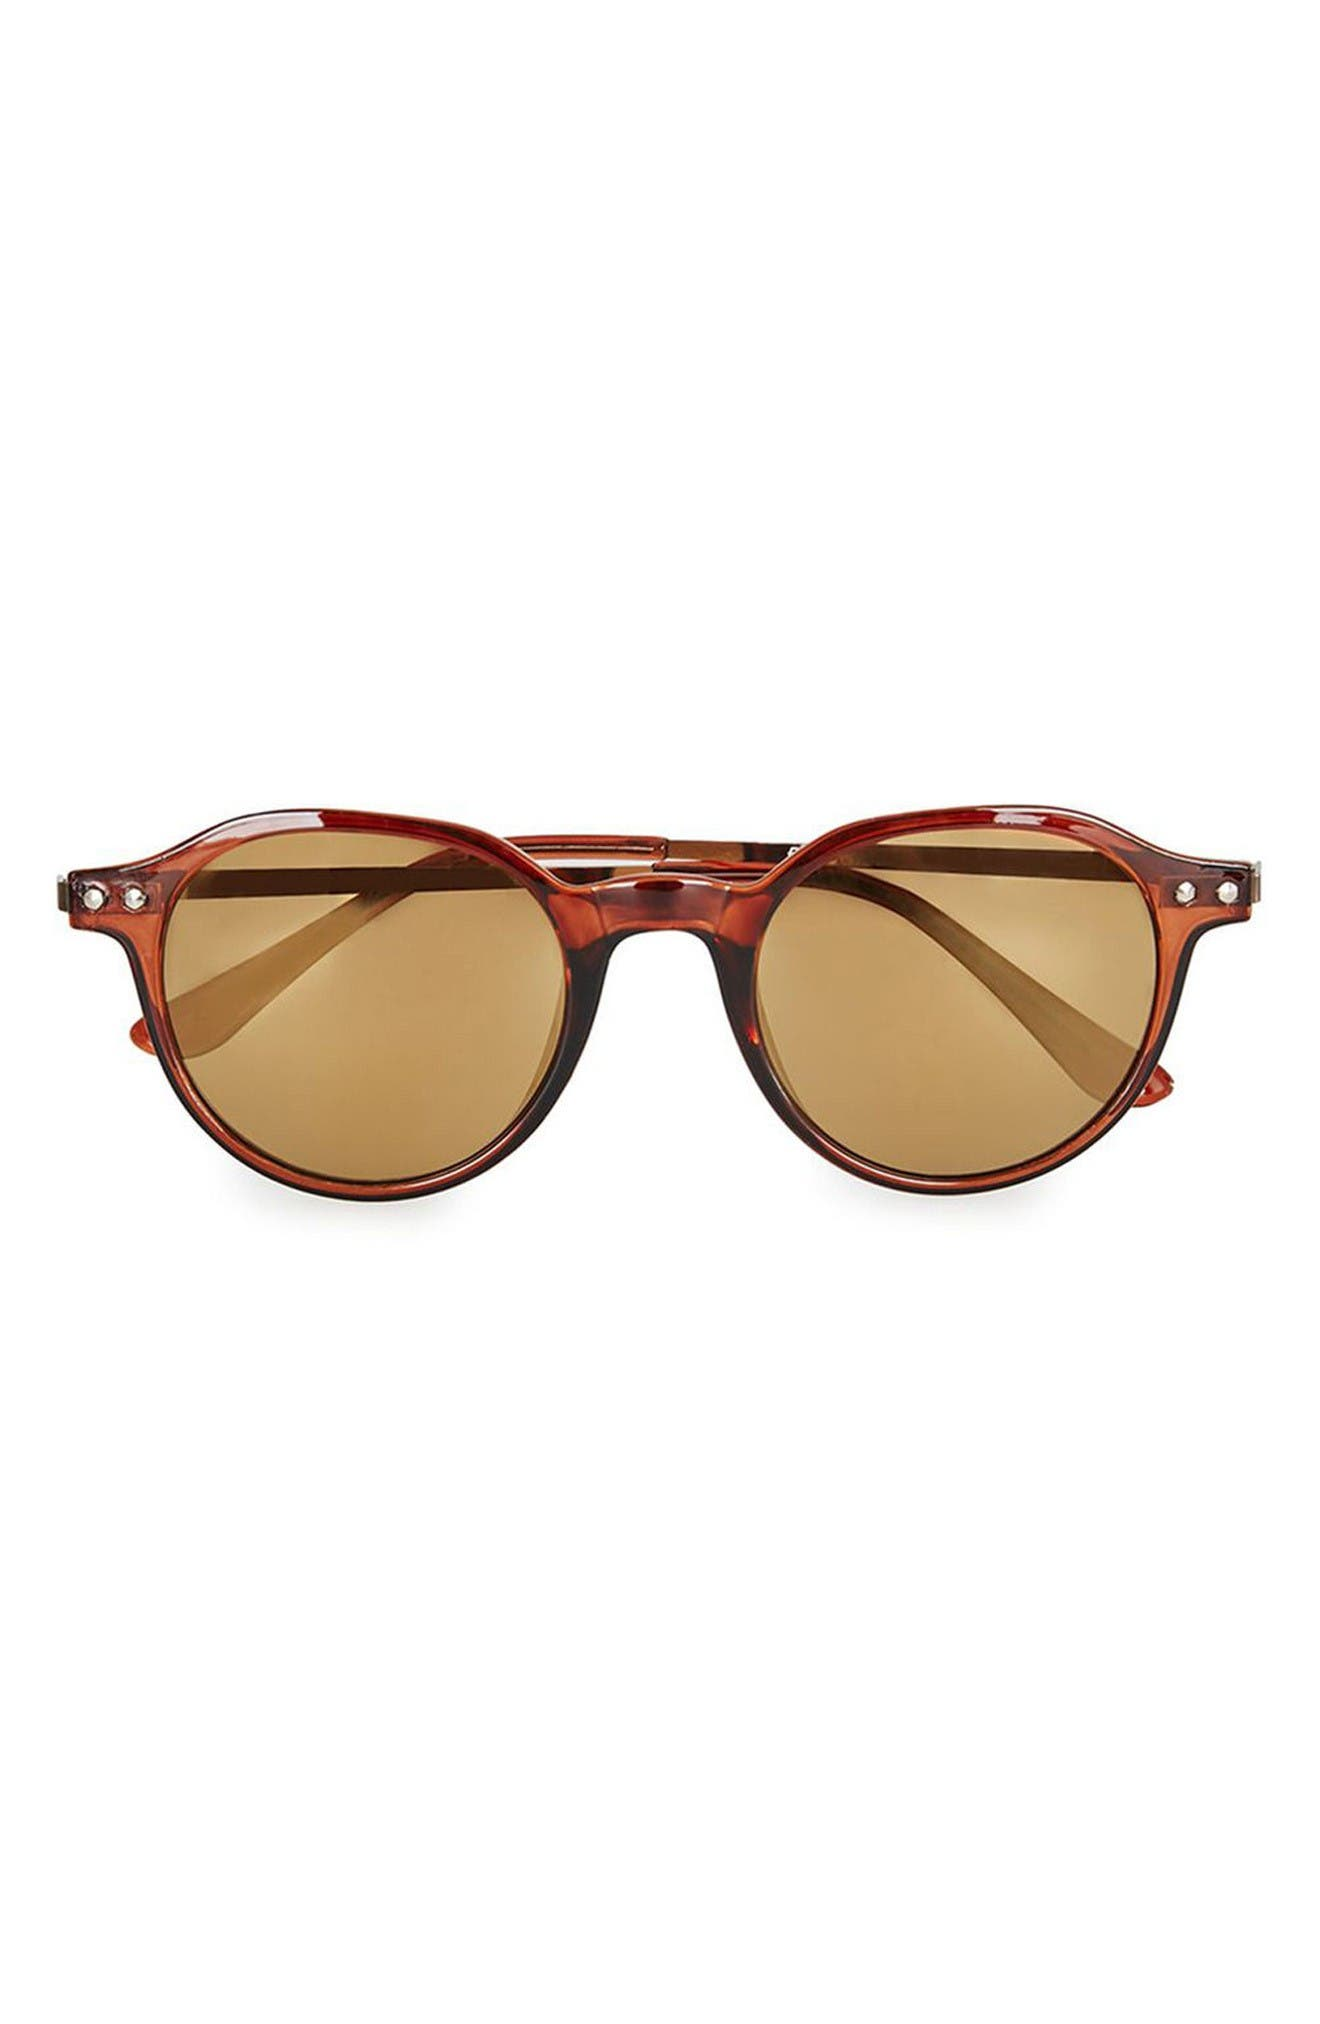 45mm Round Sunglasses,                         Main,                         color, Light Brown